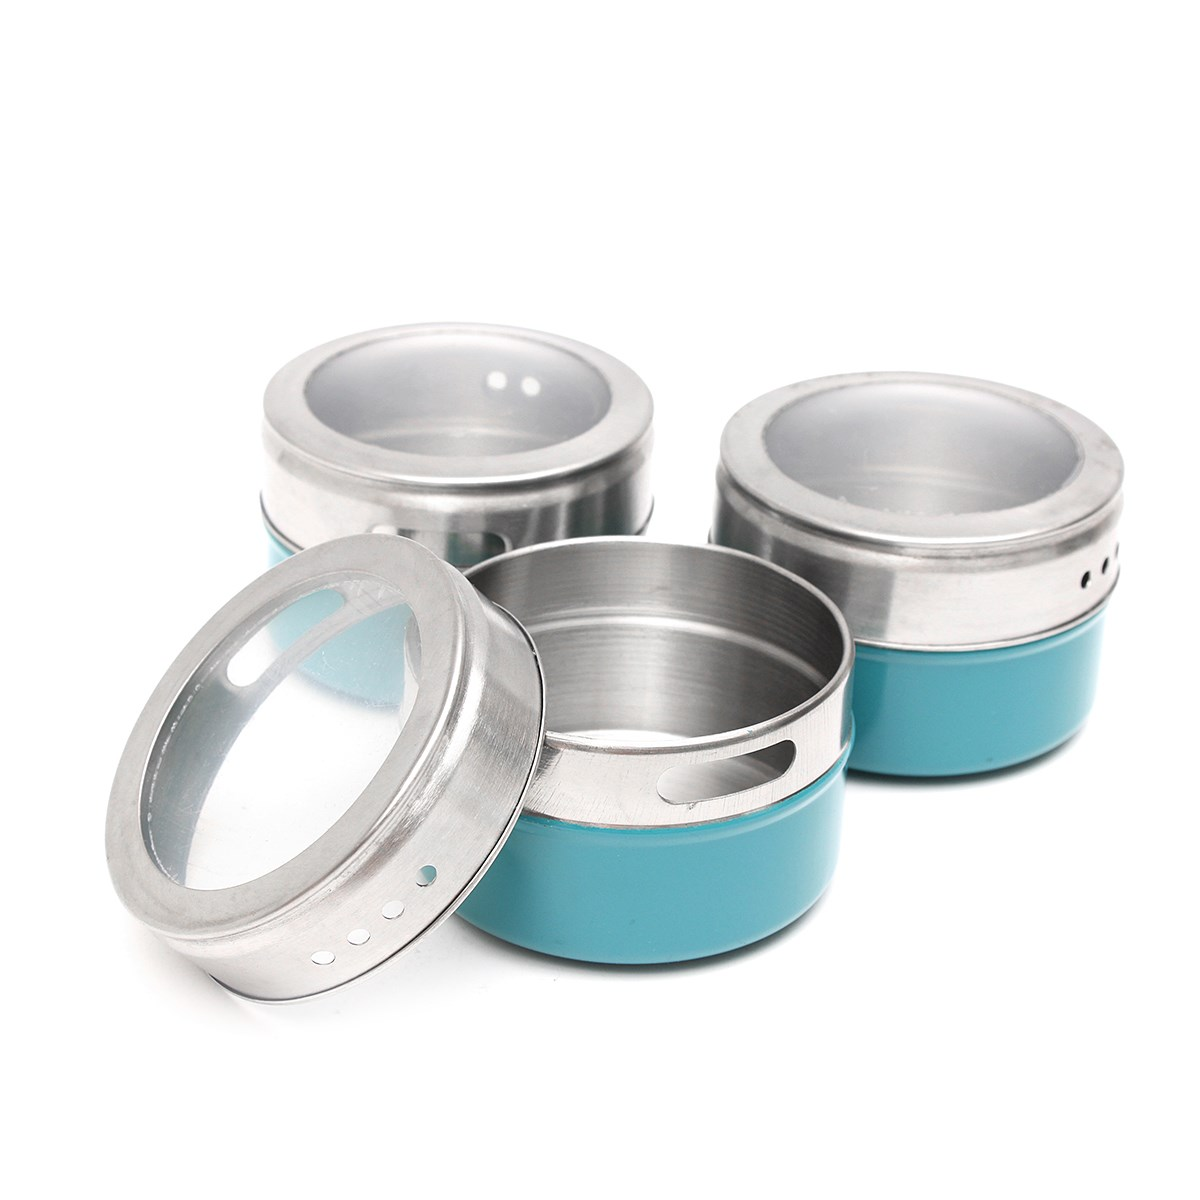 aliexpresscom  buy pcsset blue magnetic spice tin jar  - aliexpresscom  buy pcsset blue magnetic spice tin jar stainless steelspice sauce storage container jars clear lid home kitchen condiment holderfrom